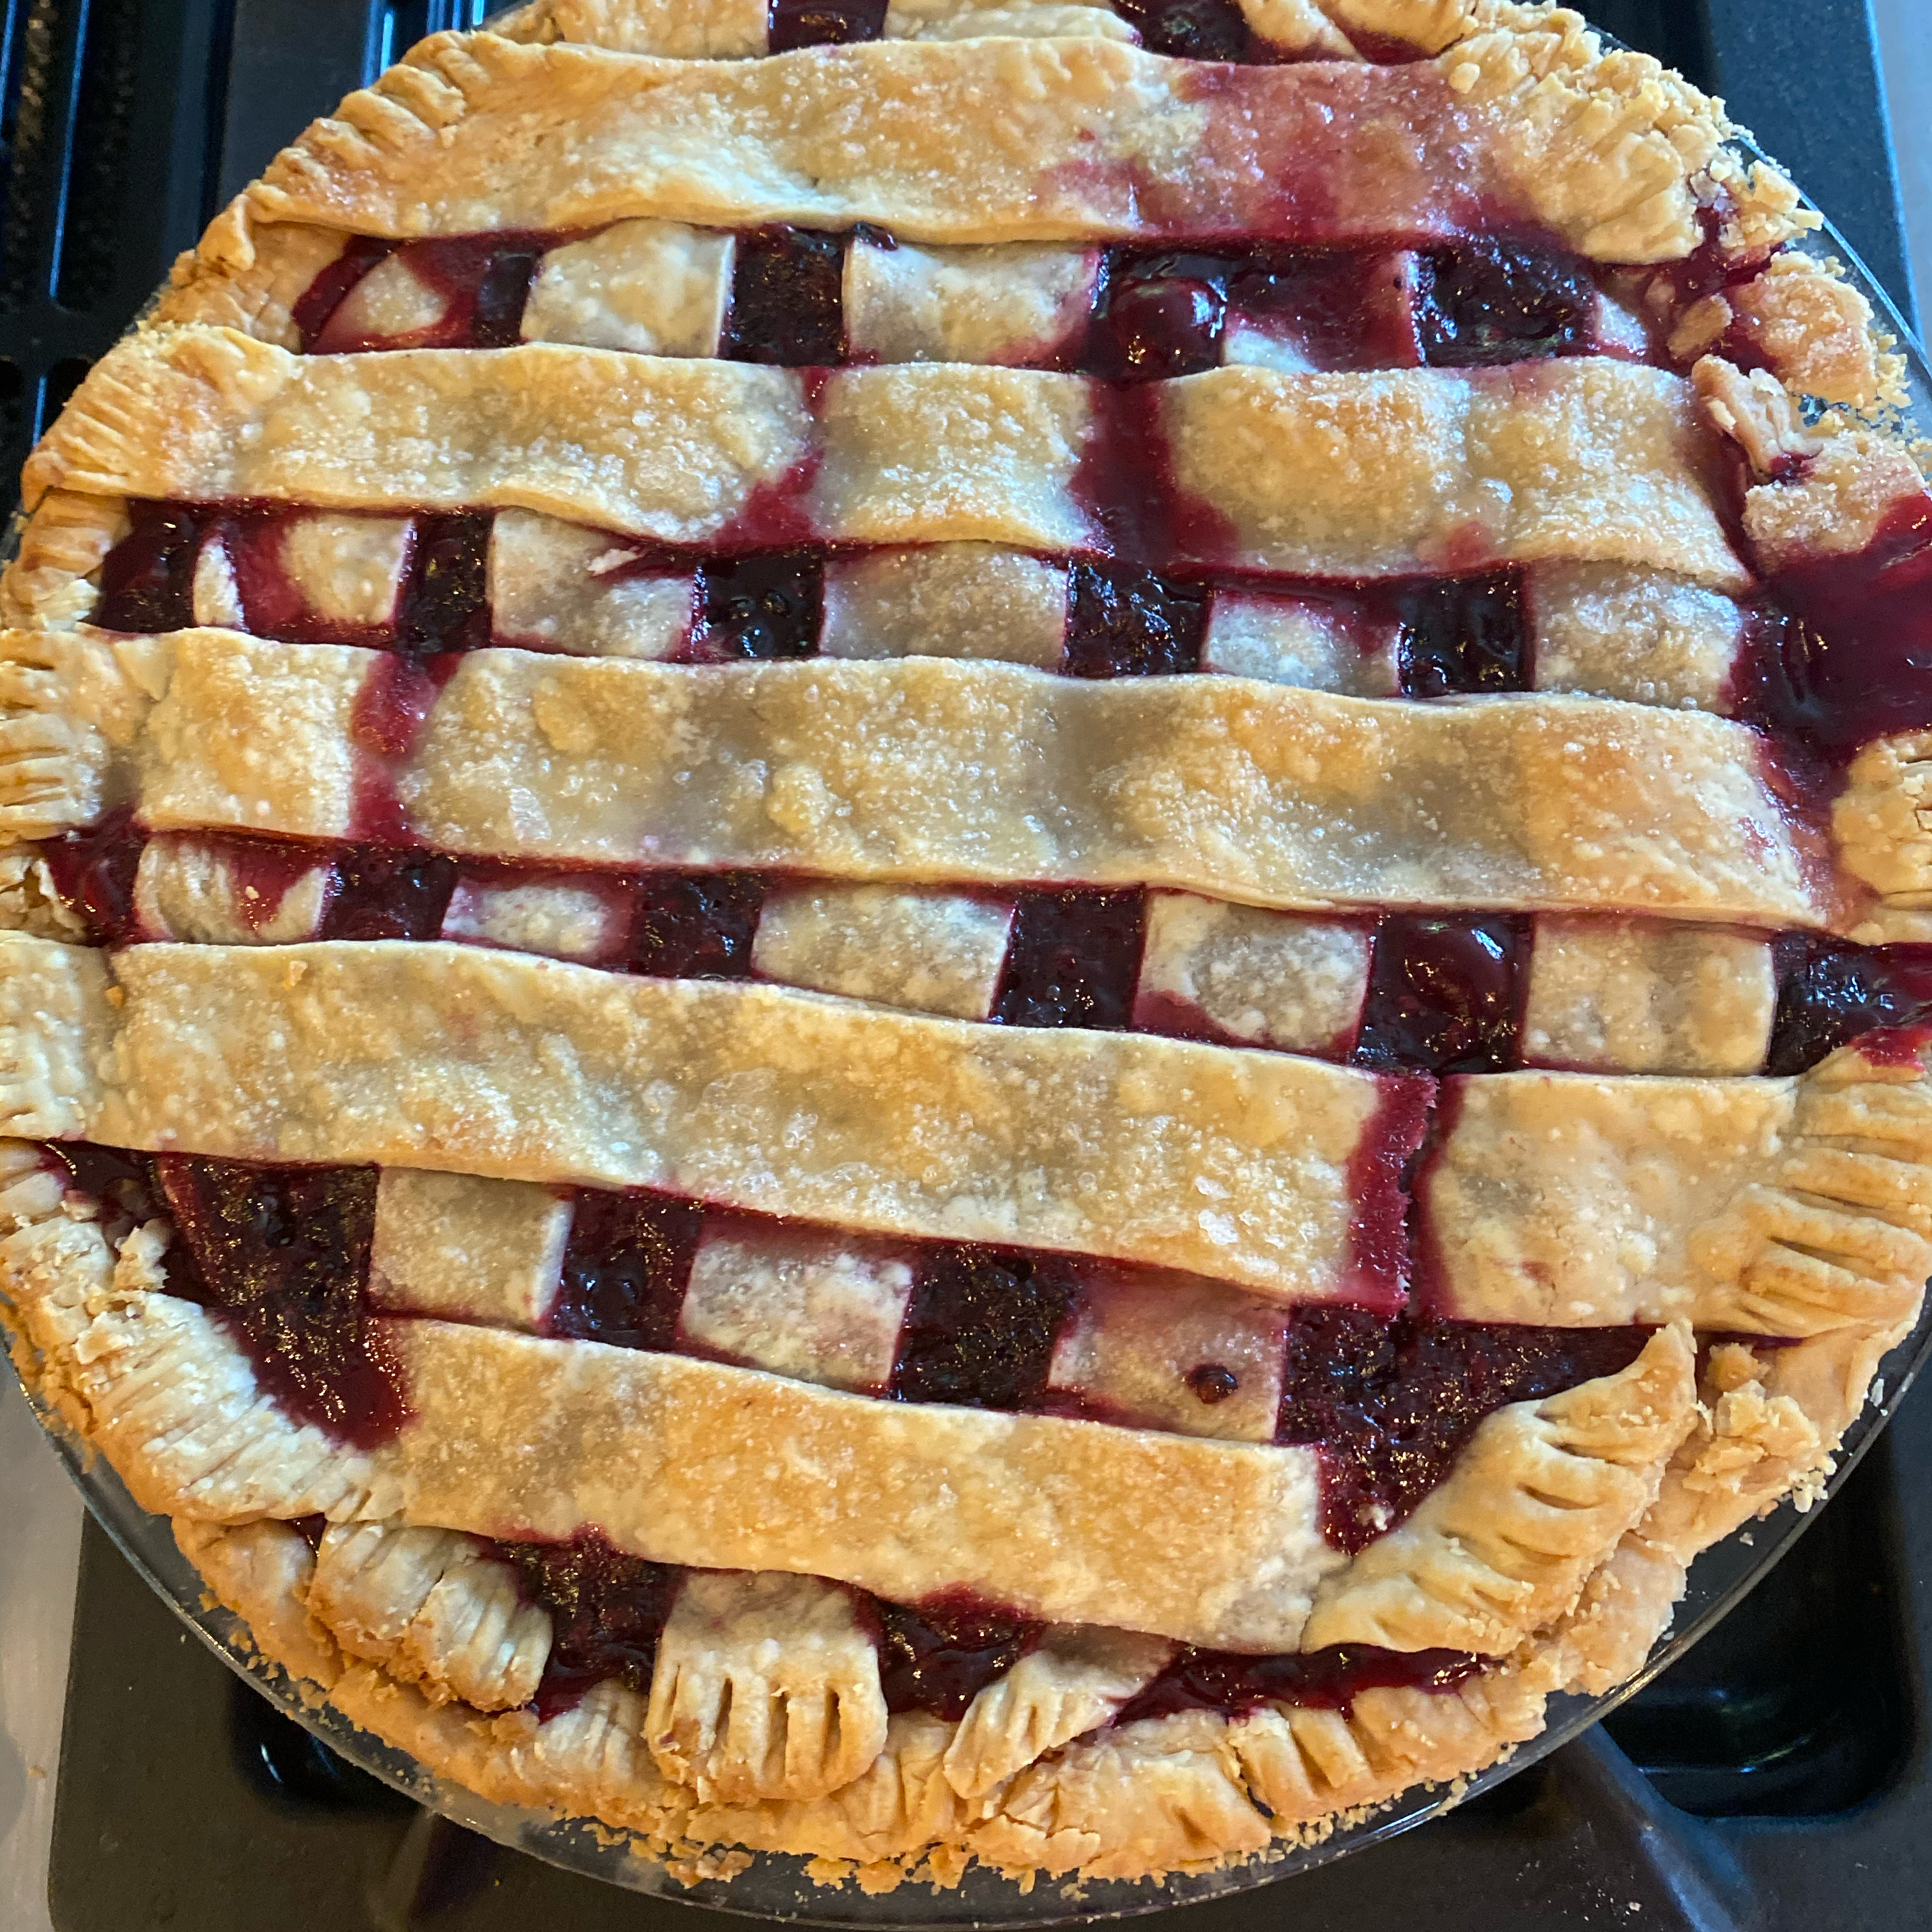 Northwest Marionberry Pie Amyj70